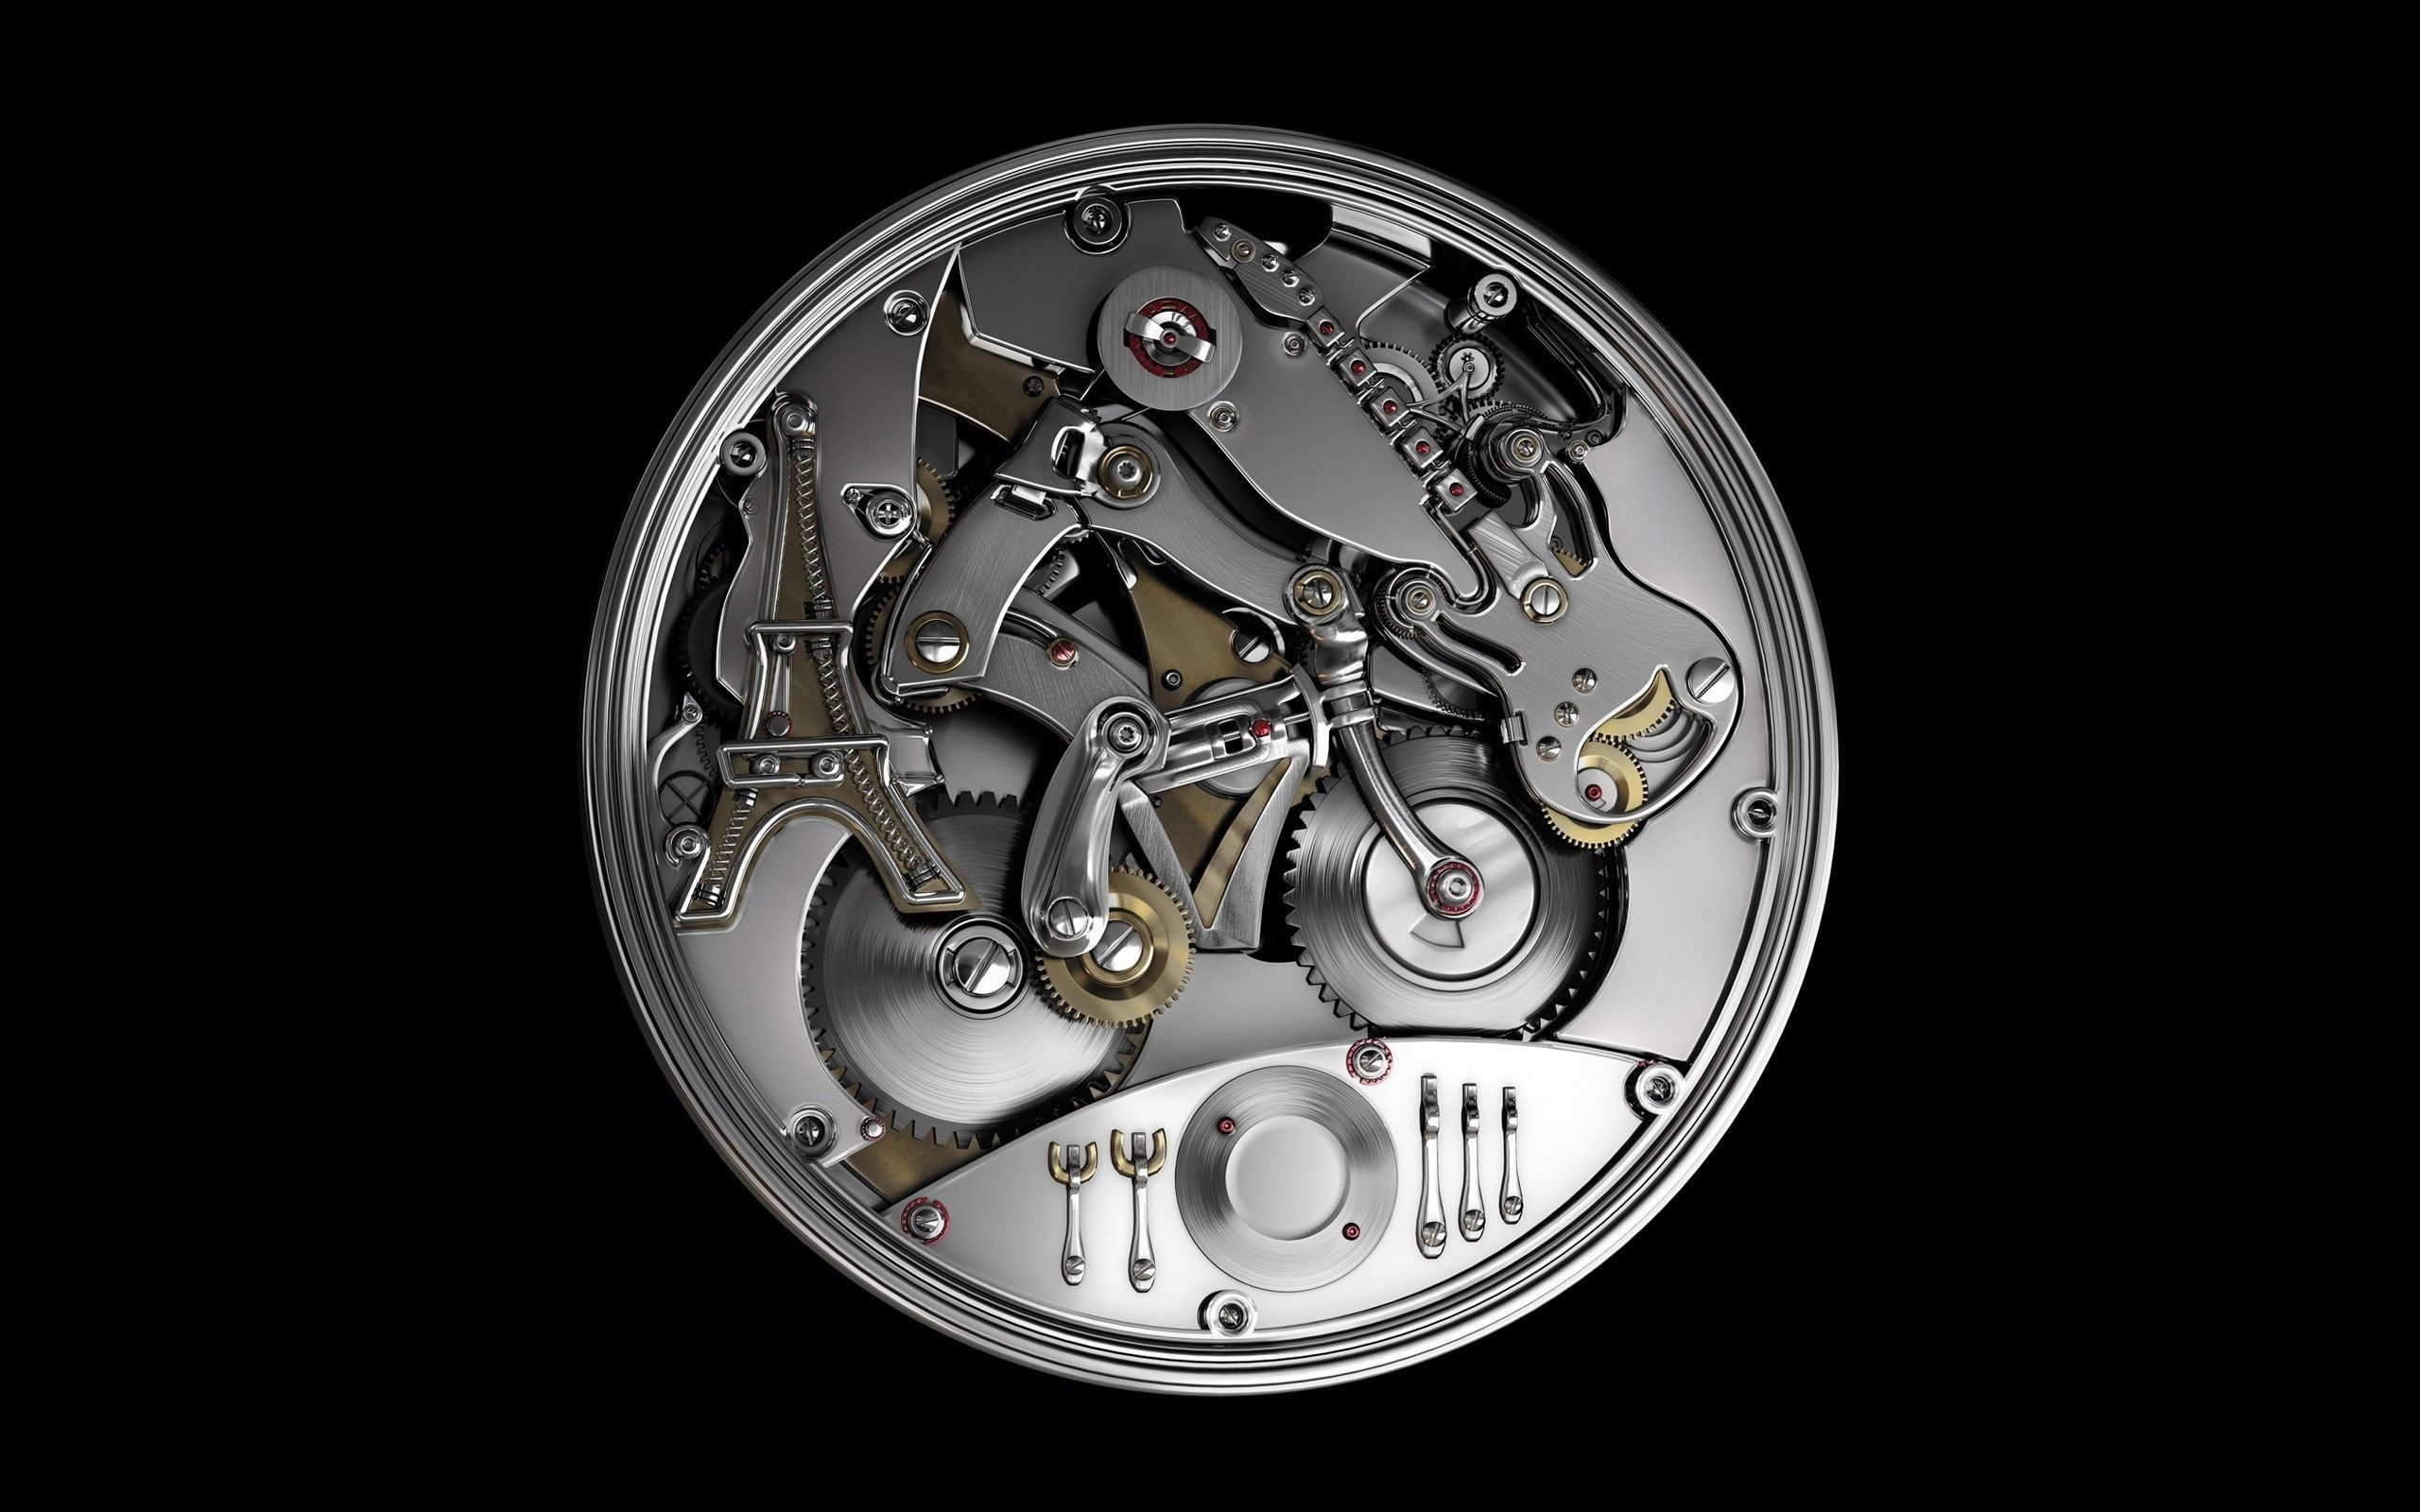 2560x1600 Mechanical Engineering Logos Wallpapers Backgrounds Images | Crazy .